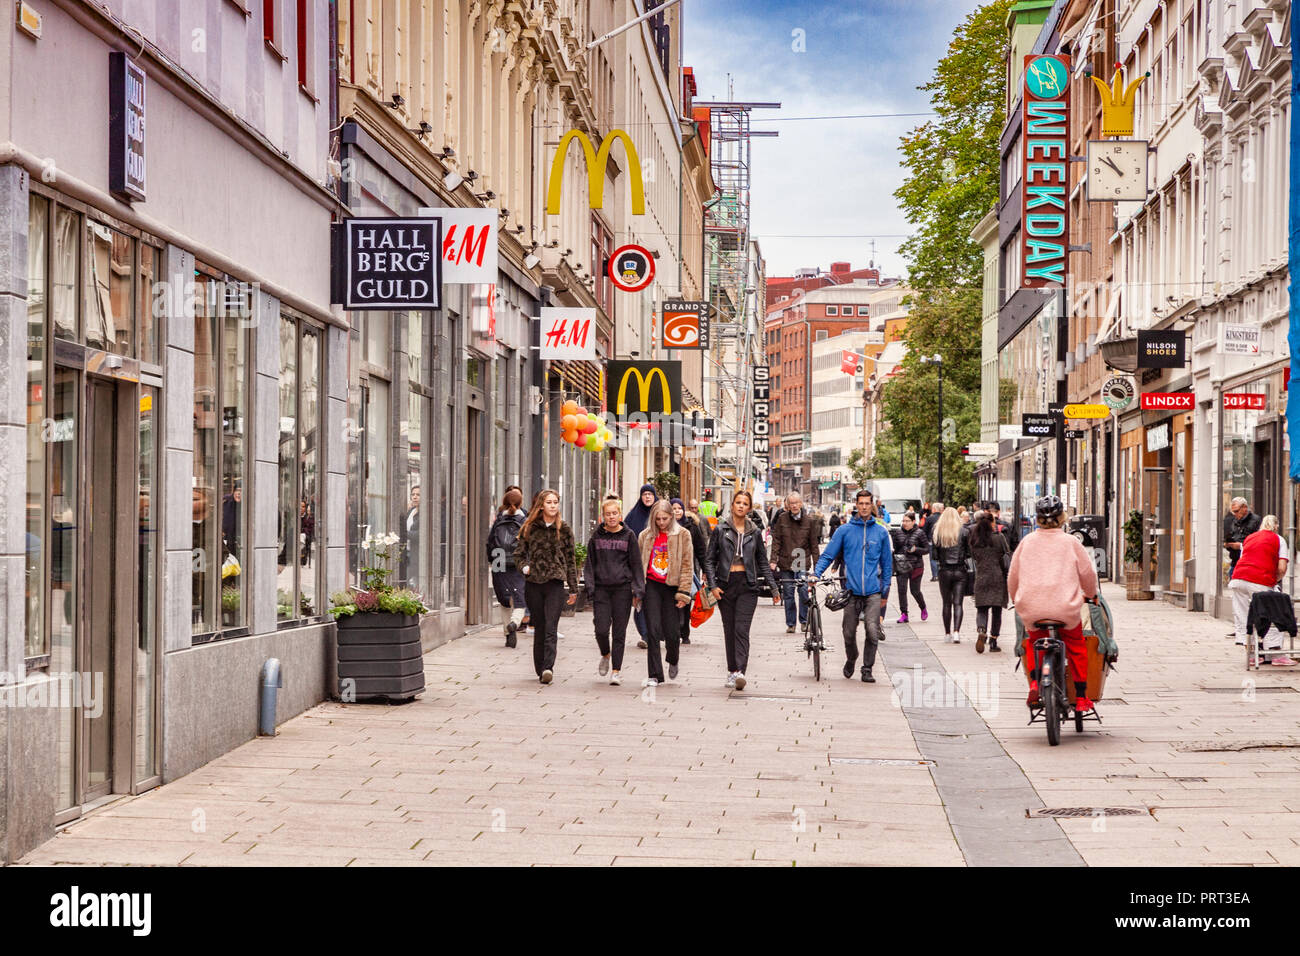 14 September 2018: Gothenburg, Sweden - Kungsgatan, the main shopping street in Gothenburg, crowded with shoppers. Stock Photo